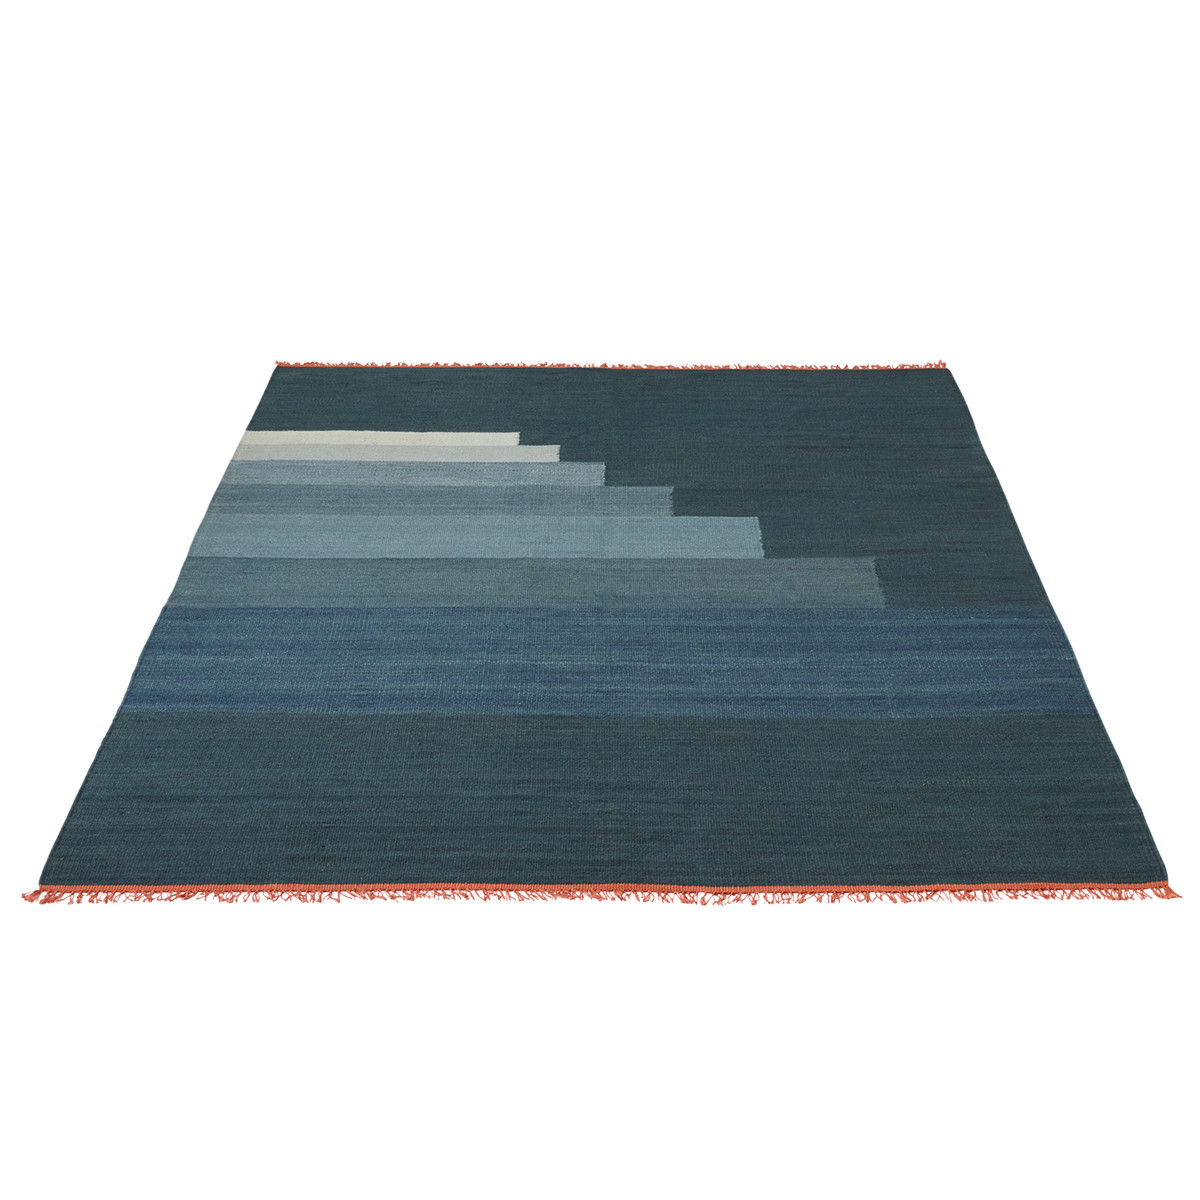 tradition another rug ap4 teppich 200 x 300 cm blue thunder blau t 300 b 200 online kaufen. Black Bedroom Furniture Sets. Home Design Ideas